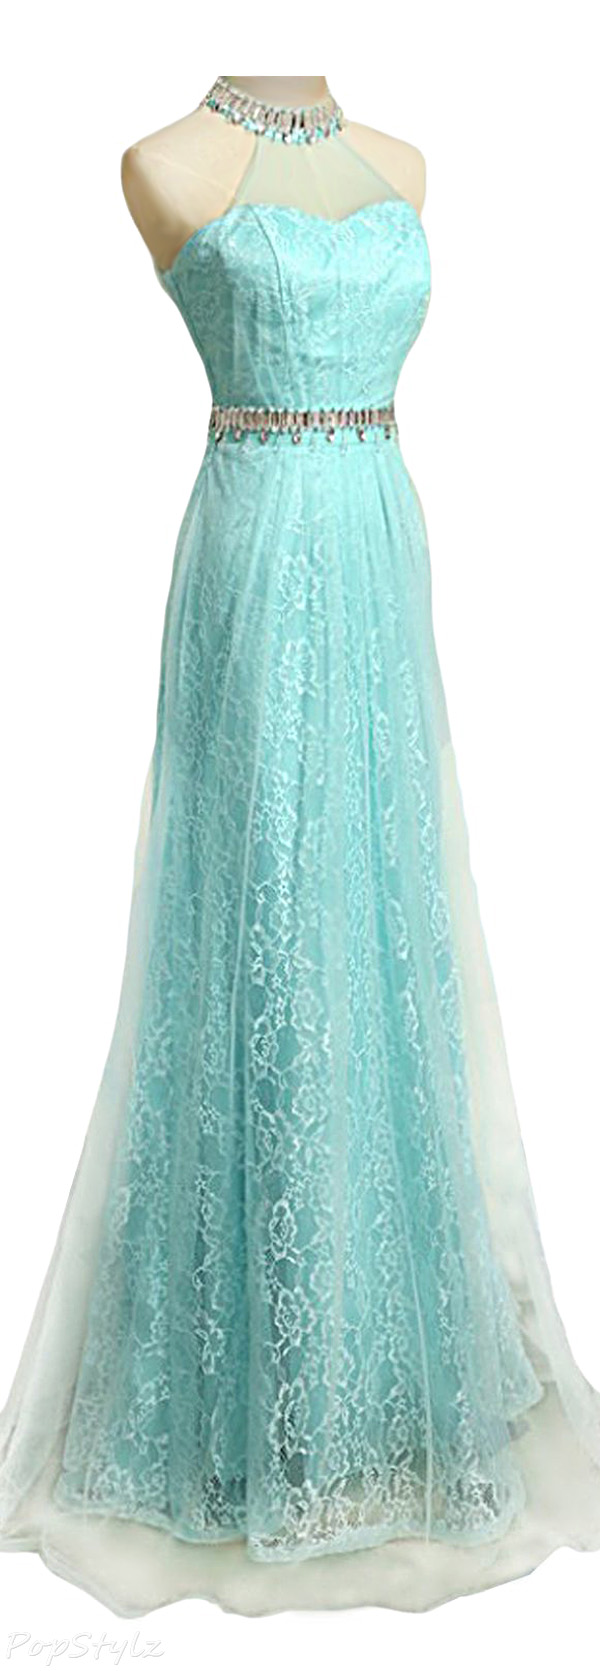 Sunvary Halter Lace & Tulle Long Formal Gown